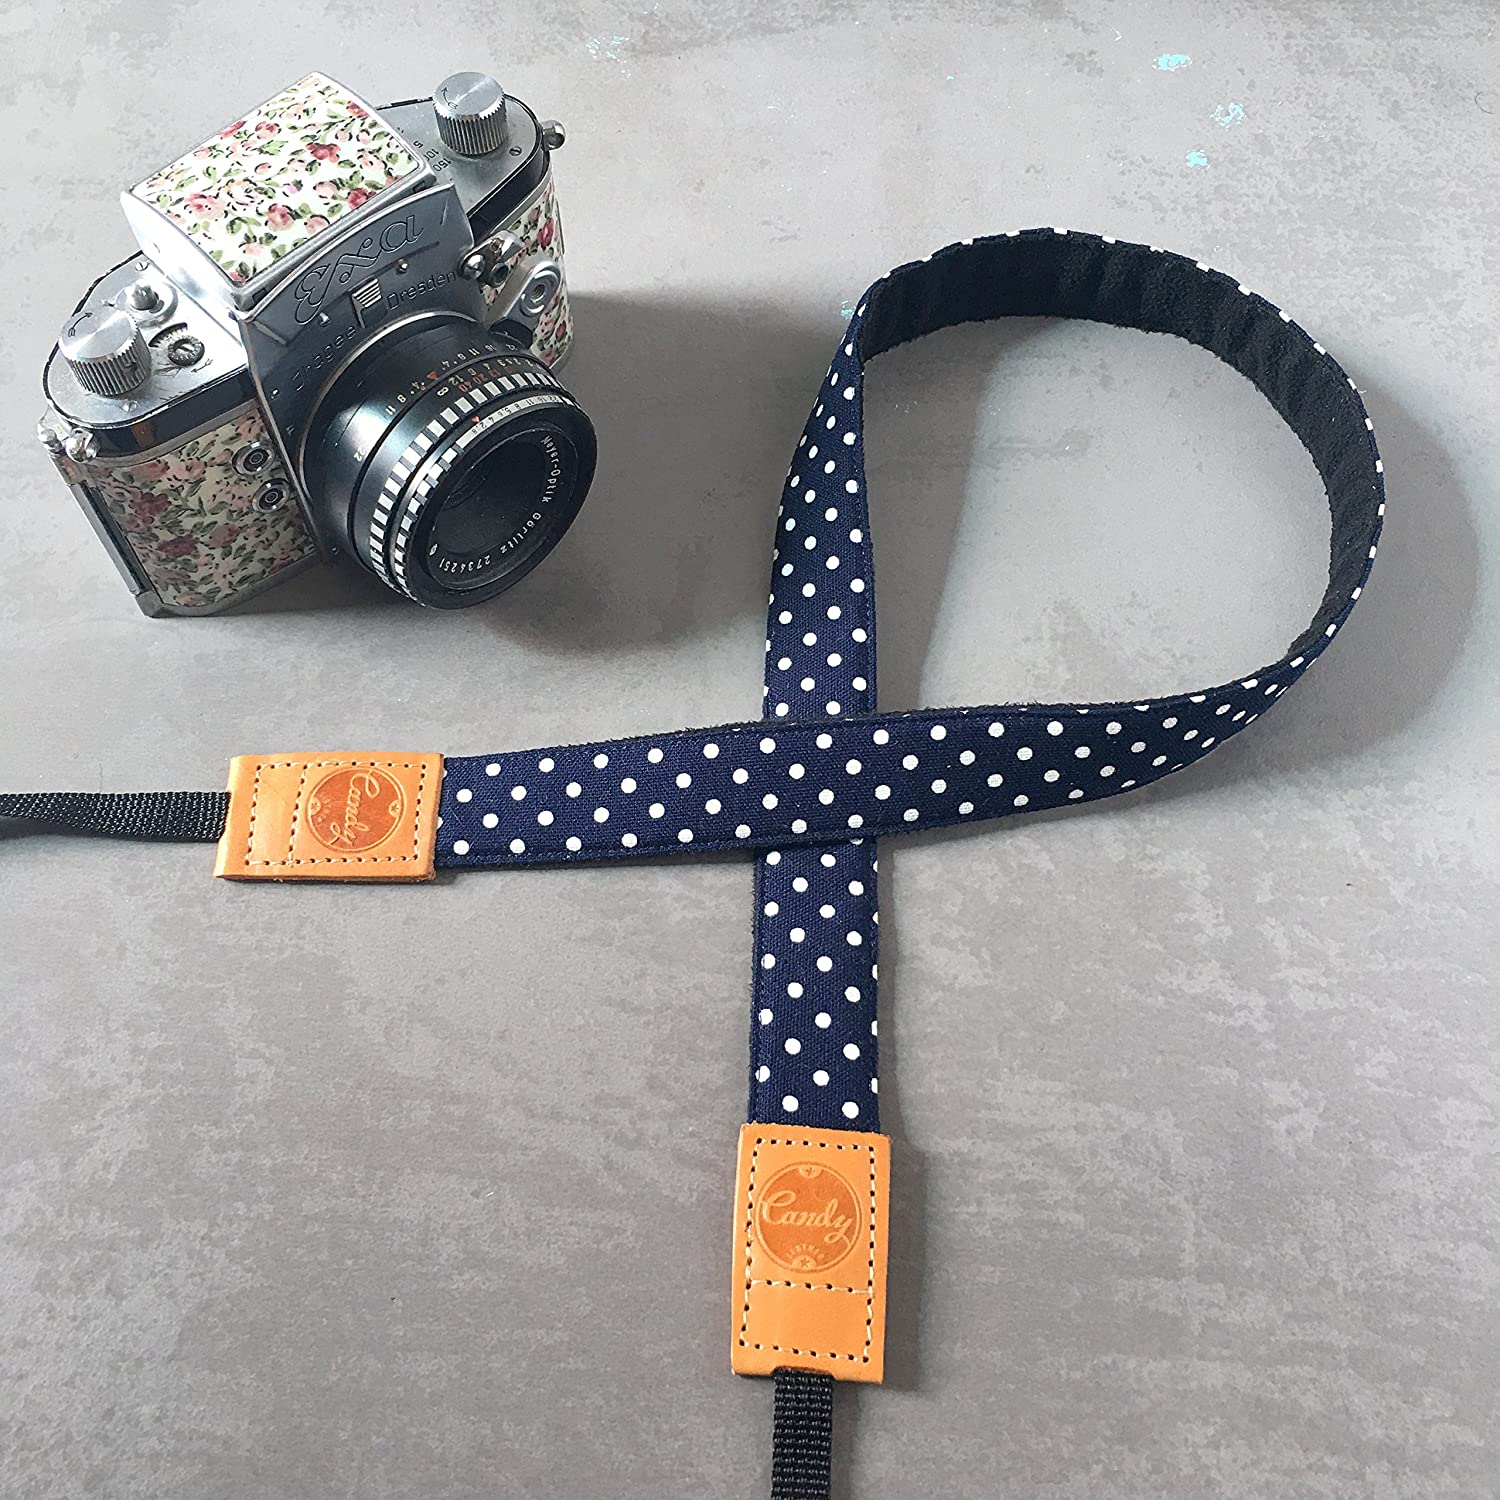 Genuine leather camera Strap Presonalized Navy Polkadot Camera strap,Candy Leather Mirrorless Camera Strap